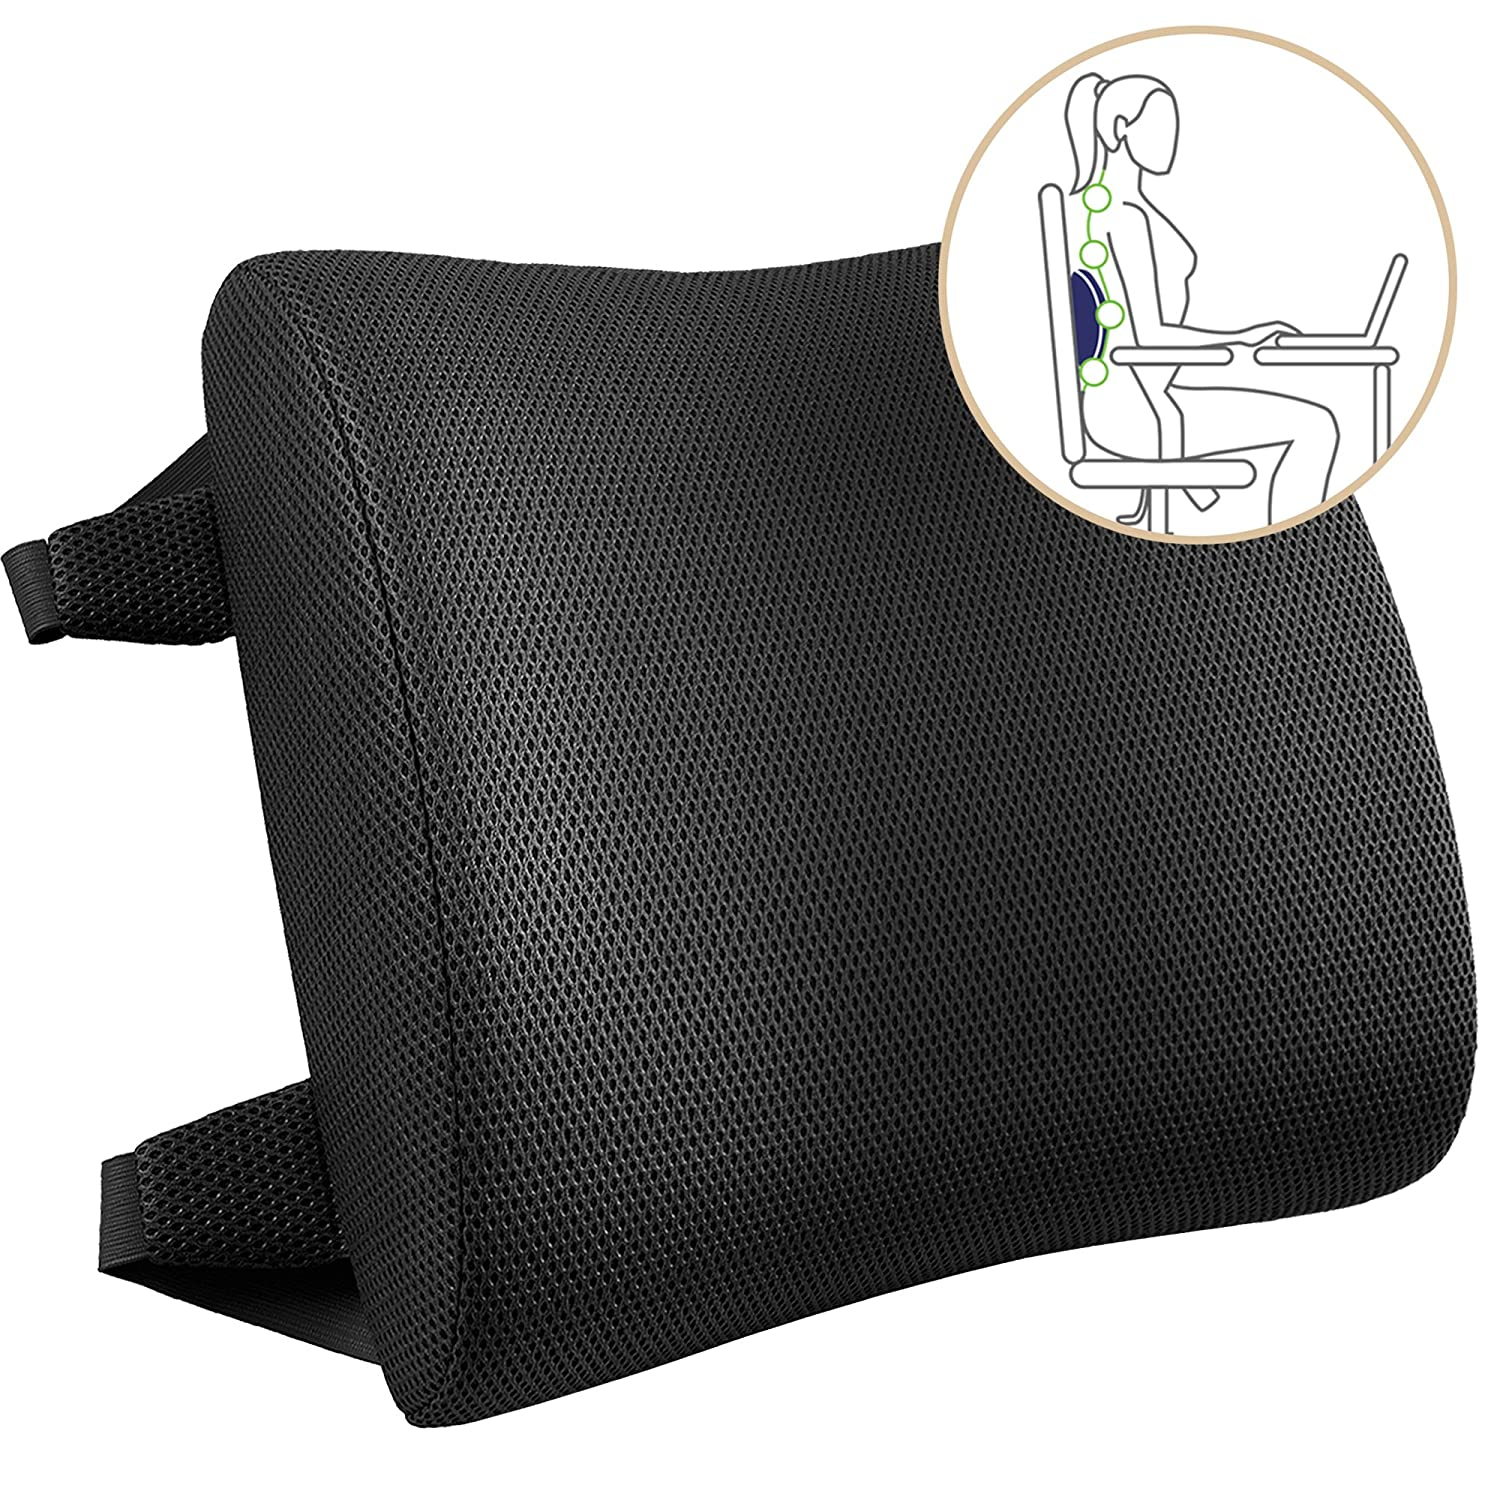 Ergonomic Memory Foam Backrest Cushion - Lumbar Support for Lower Back Pain Relief - Ideal Portable Orthopedic Seat Pillow for Car and Computer/Office Desk Chair Lunavy